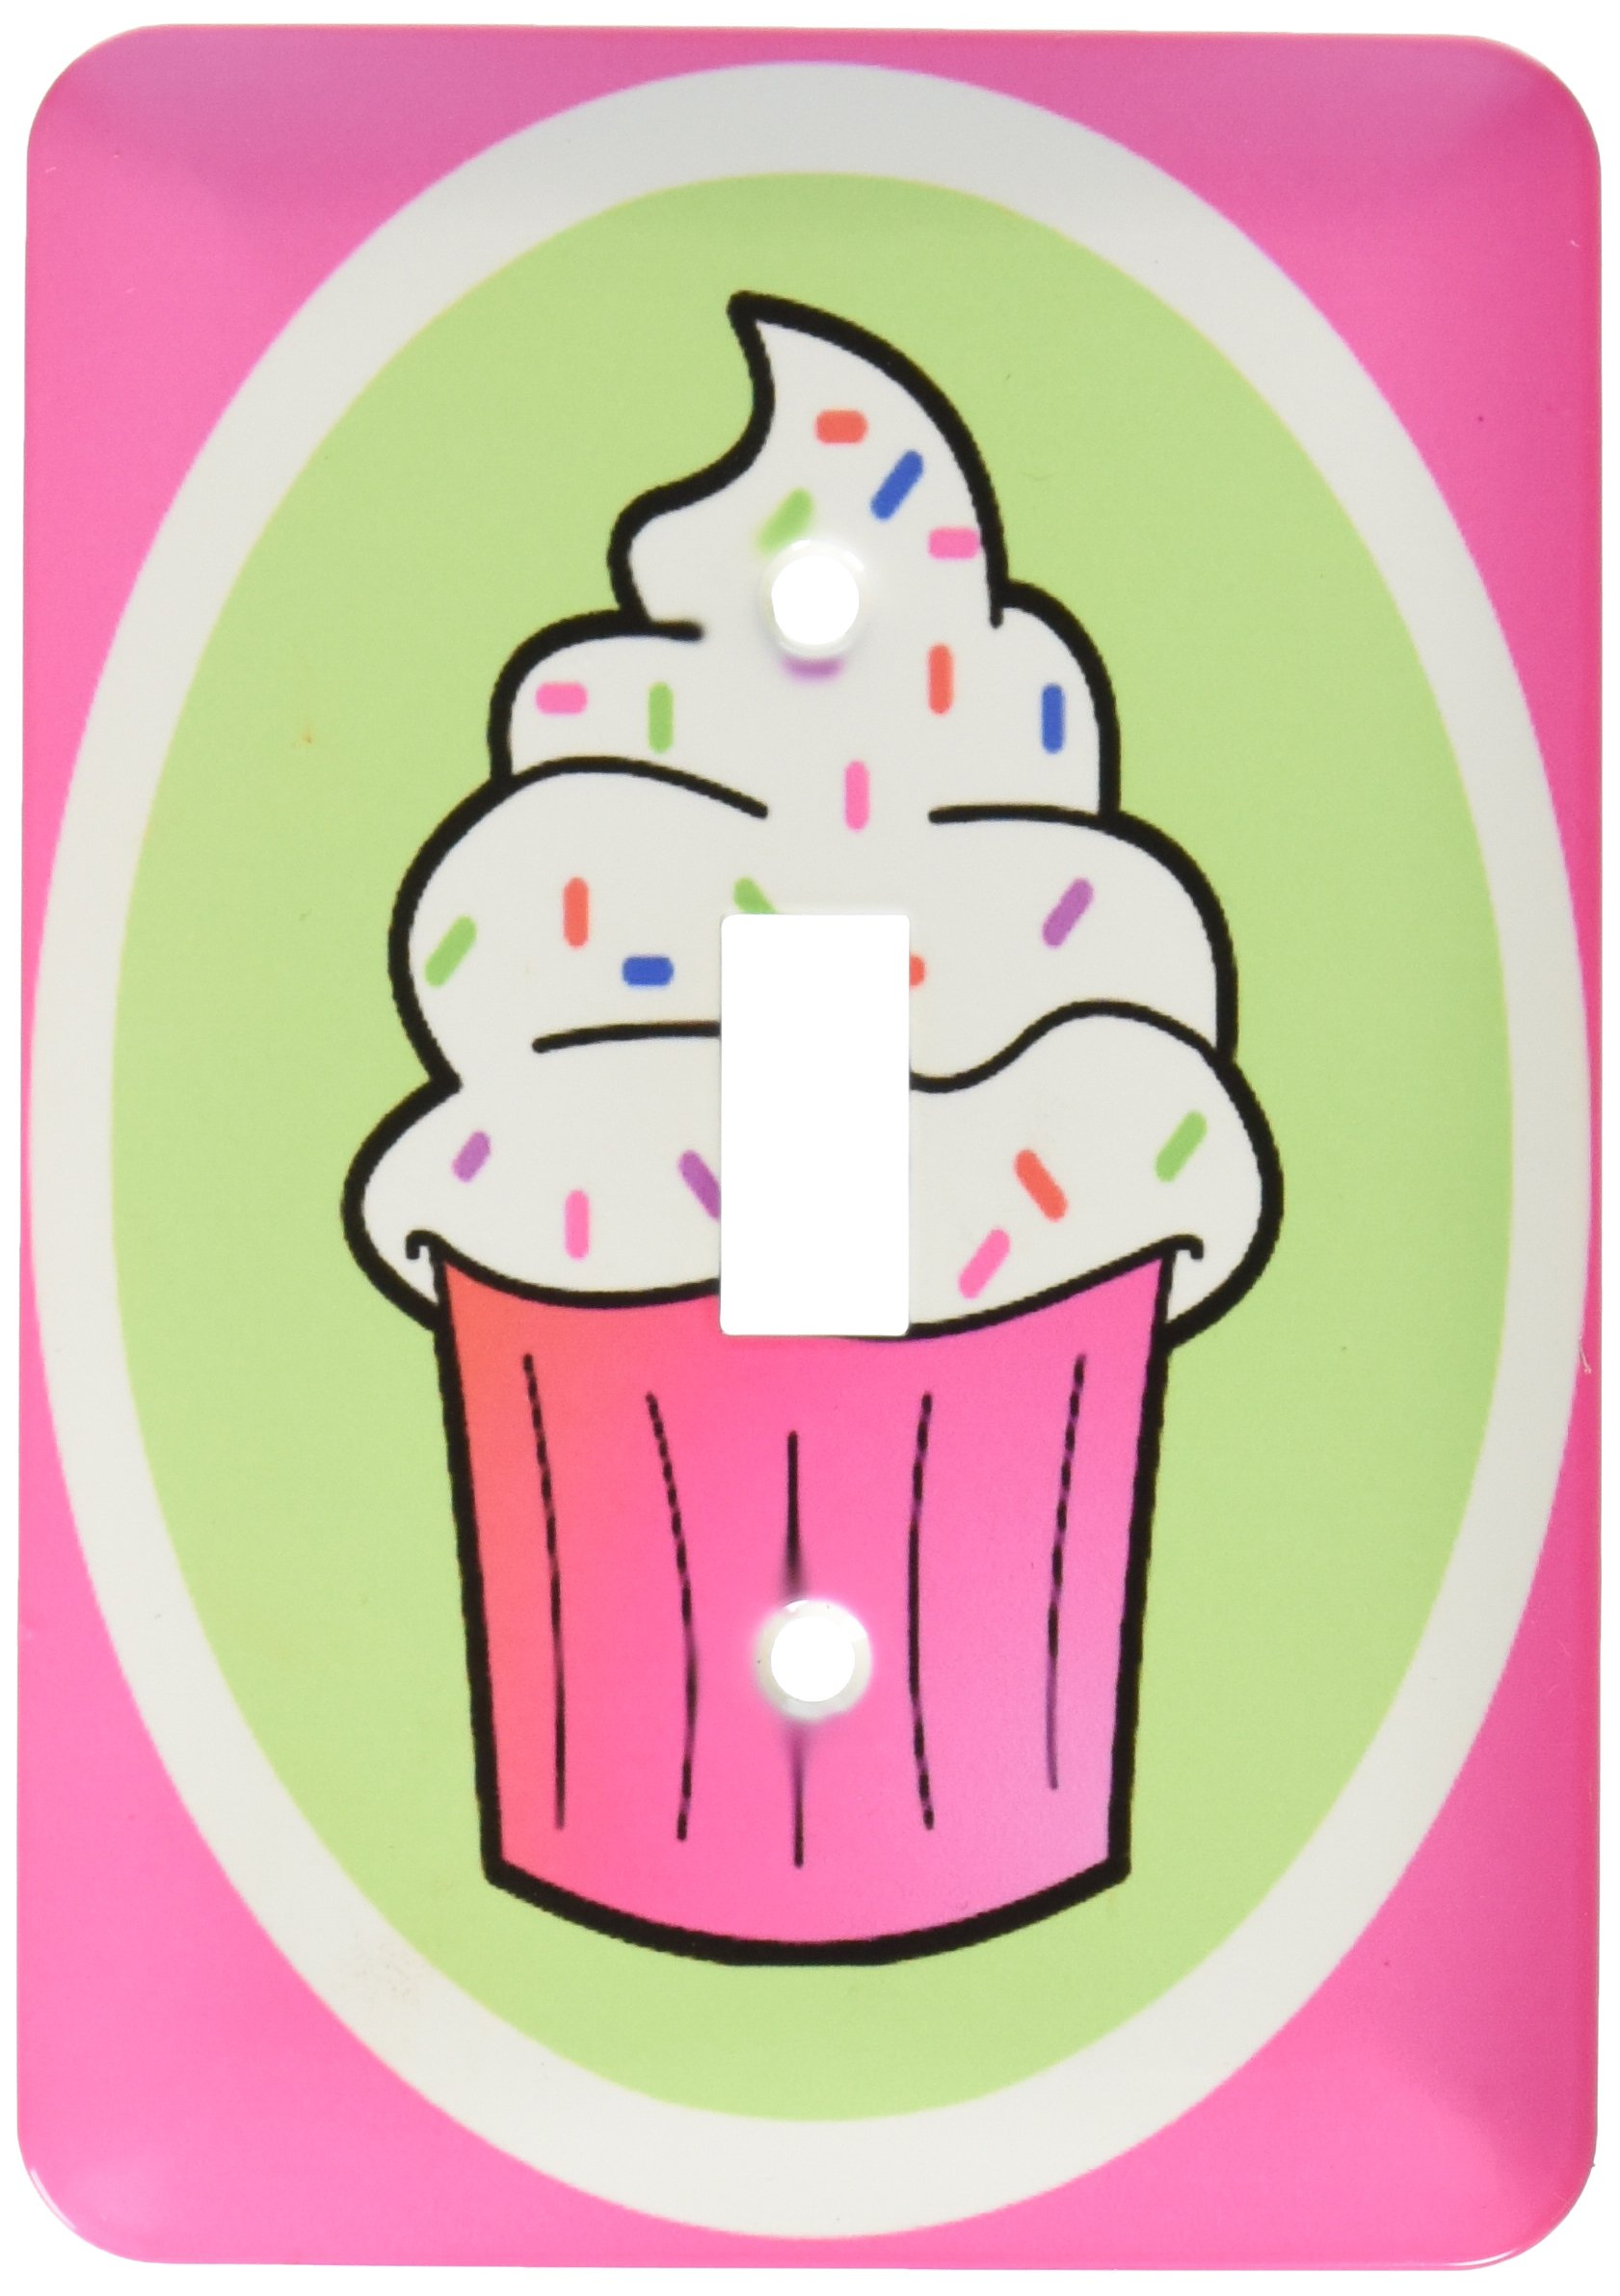 3dRose lsp_43129_1 Cute Cupcake White Frosting with Sprinkles Kawaii Cakes Pink Single Toggle Switch by 3dRose